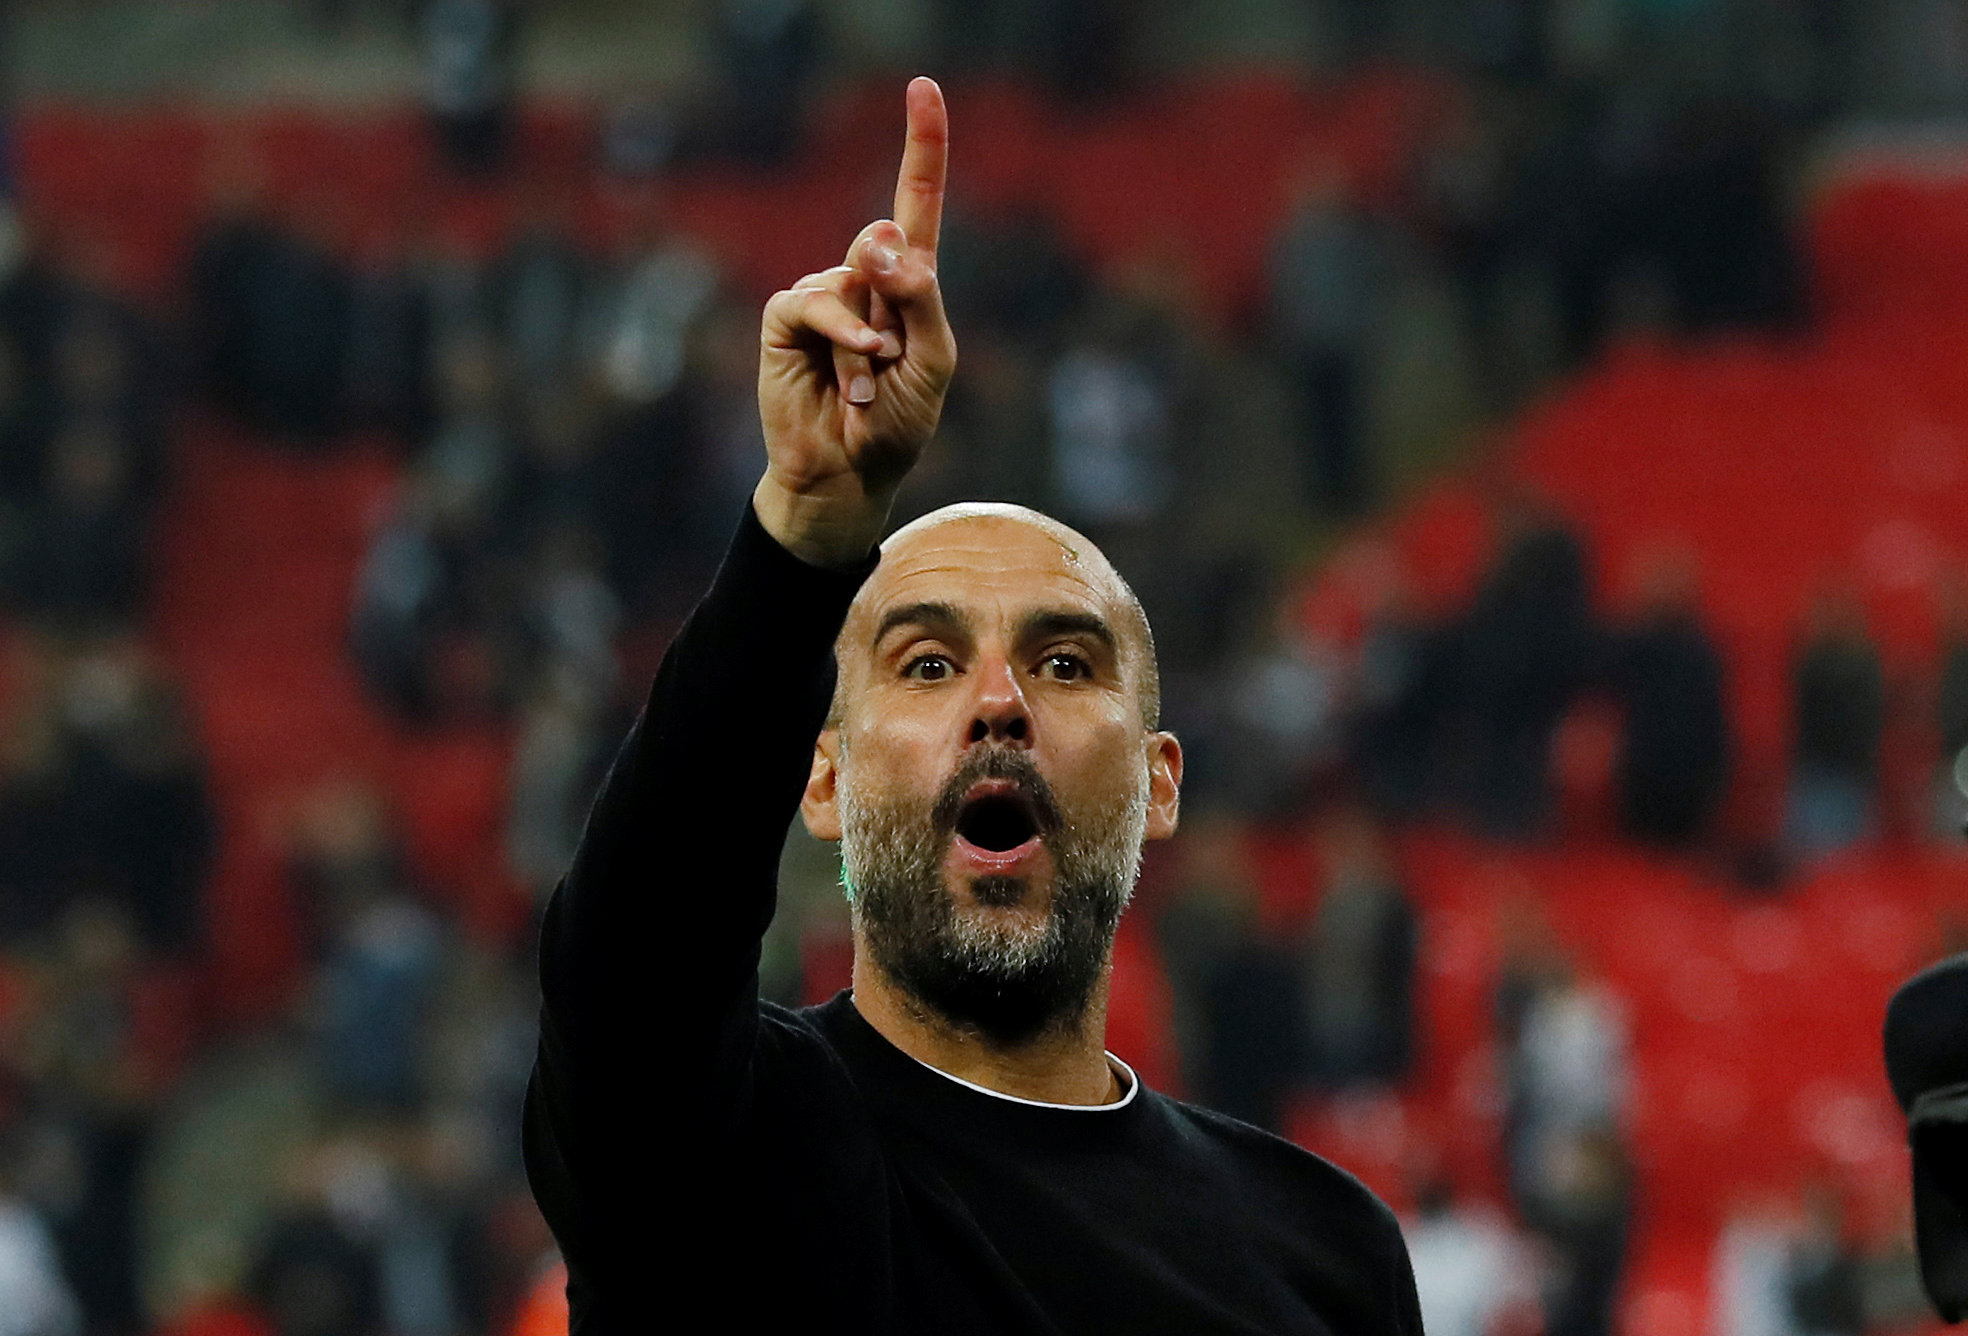 Guardiola proves 'Pep's Way' can work in England too